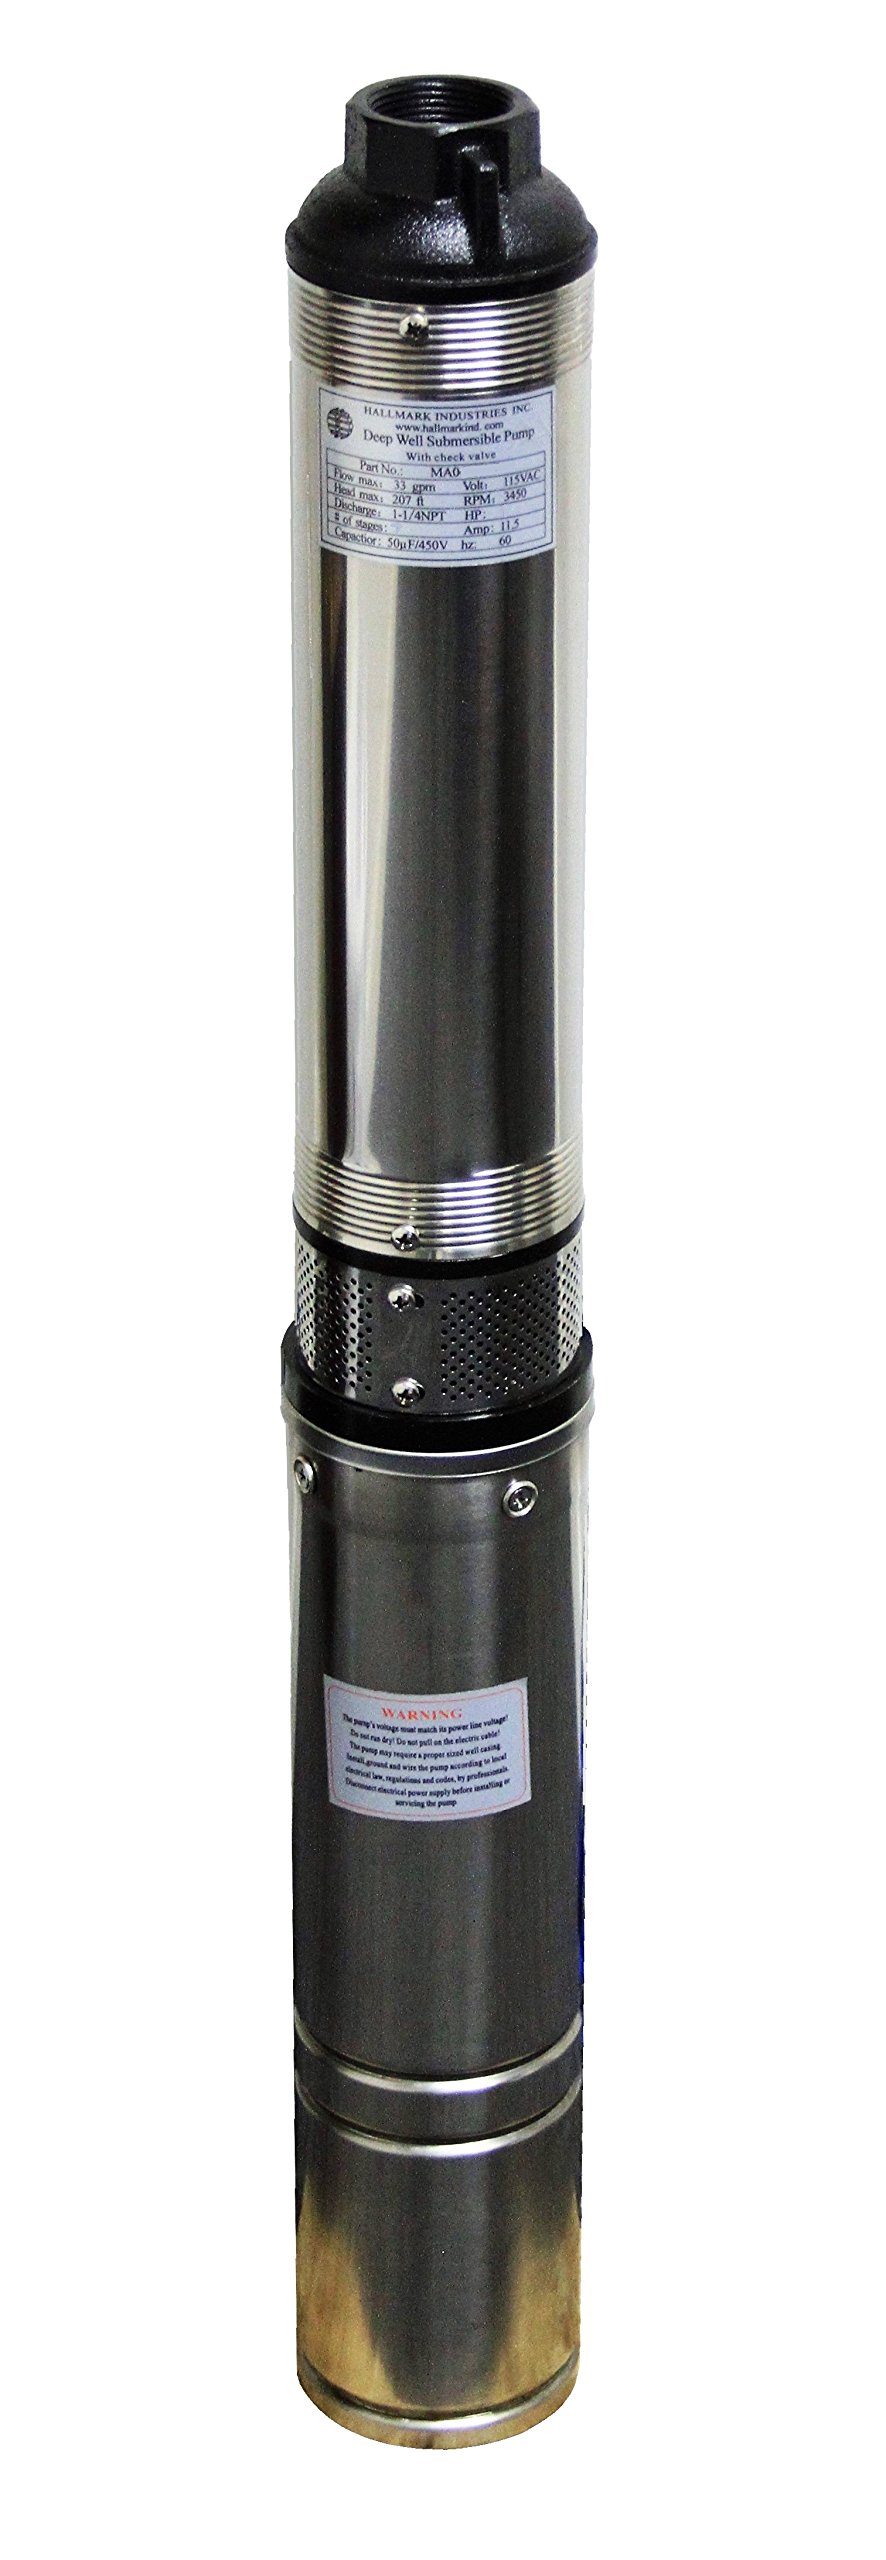 Hallmark Industries MA0419X-12A Deep Well Submersible Pump, 2 hp, 230V, 60 Hz, 35 GPM, 400' Head, Stainless Steel, 4''